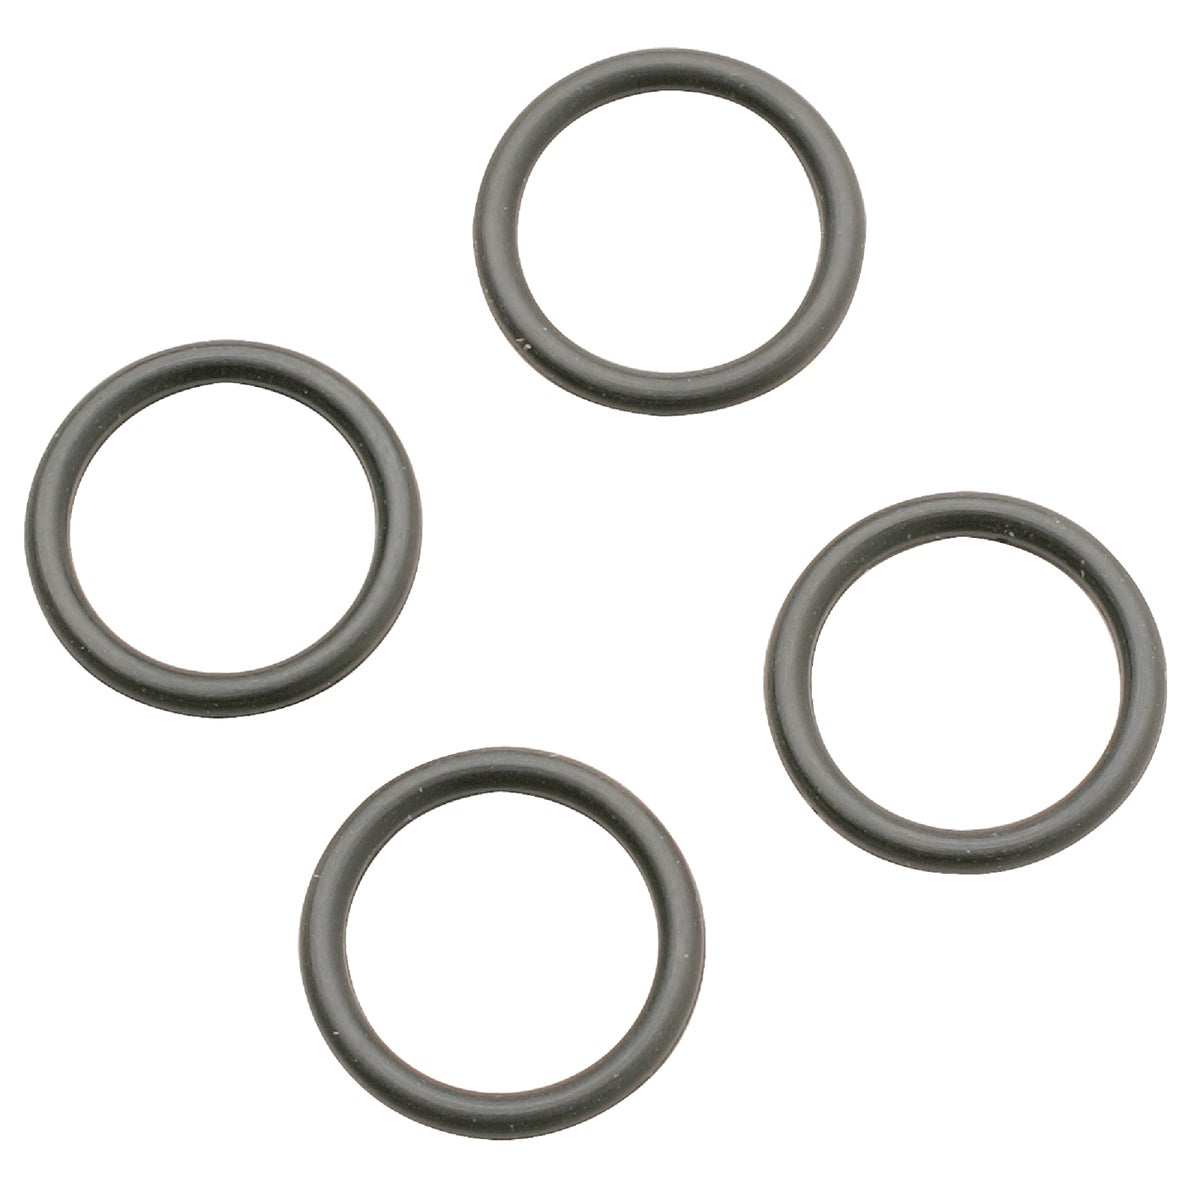 "7/8""ID O-RINGS - 402898 by Plumb Pak/keeney Mfg"